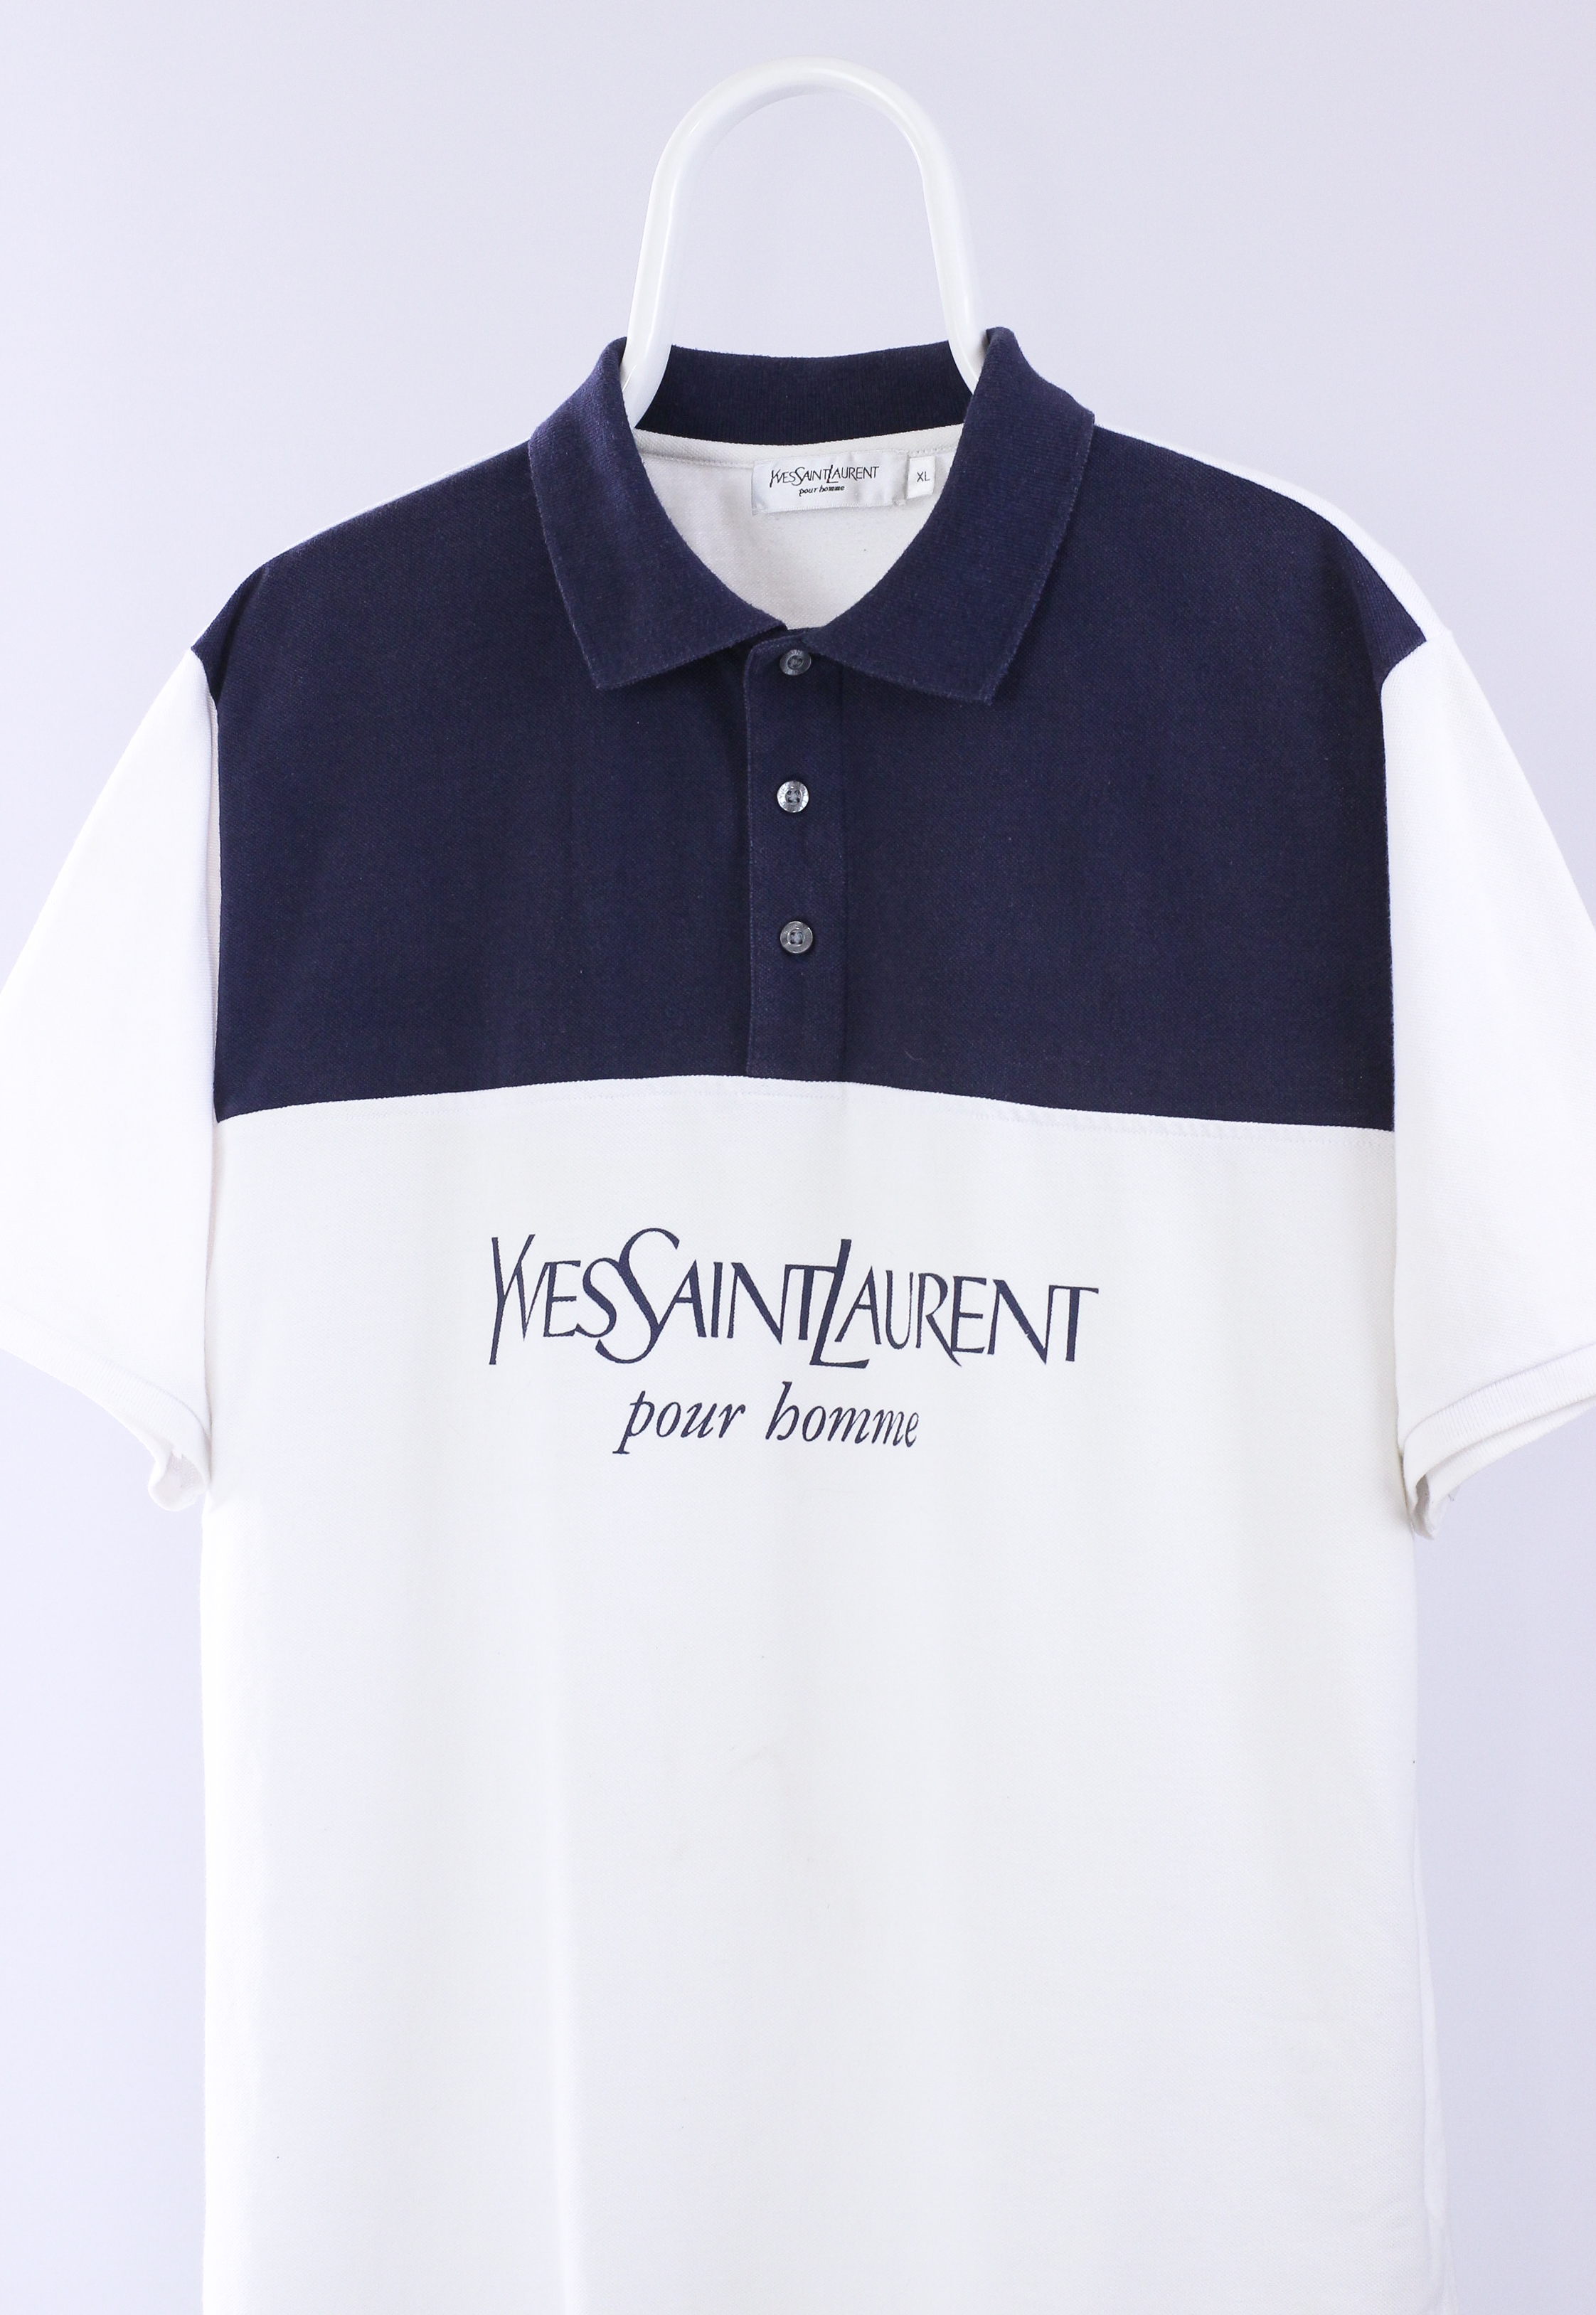 0f877827f78 Vintage × Ysl Pour Homme × Yves Saint Laurent ×. Vintage Mens YSL Yves  Saint Laurent Big Logo Polo Shirt